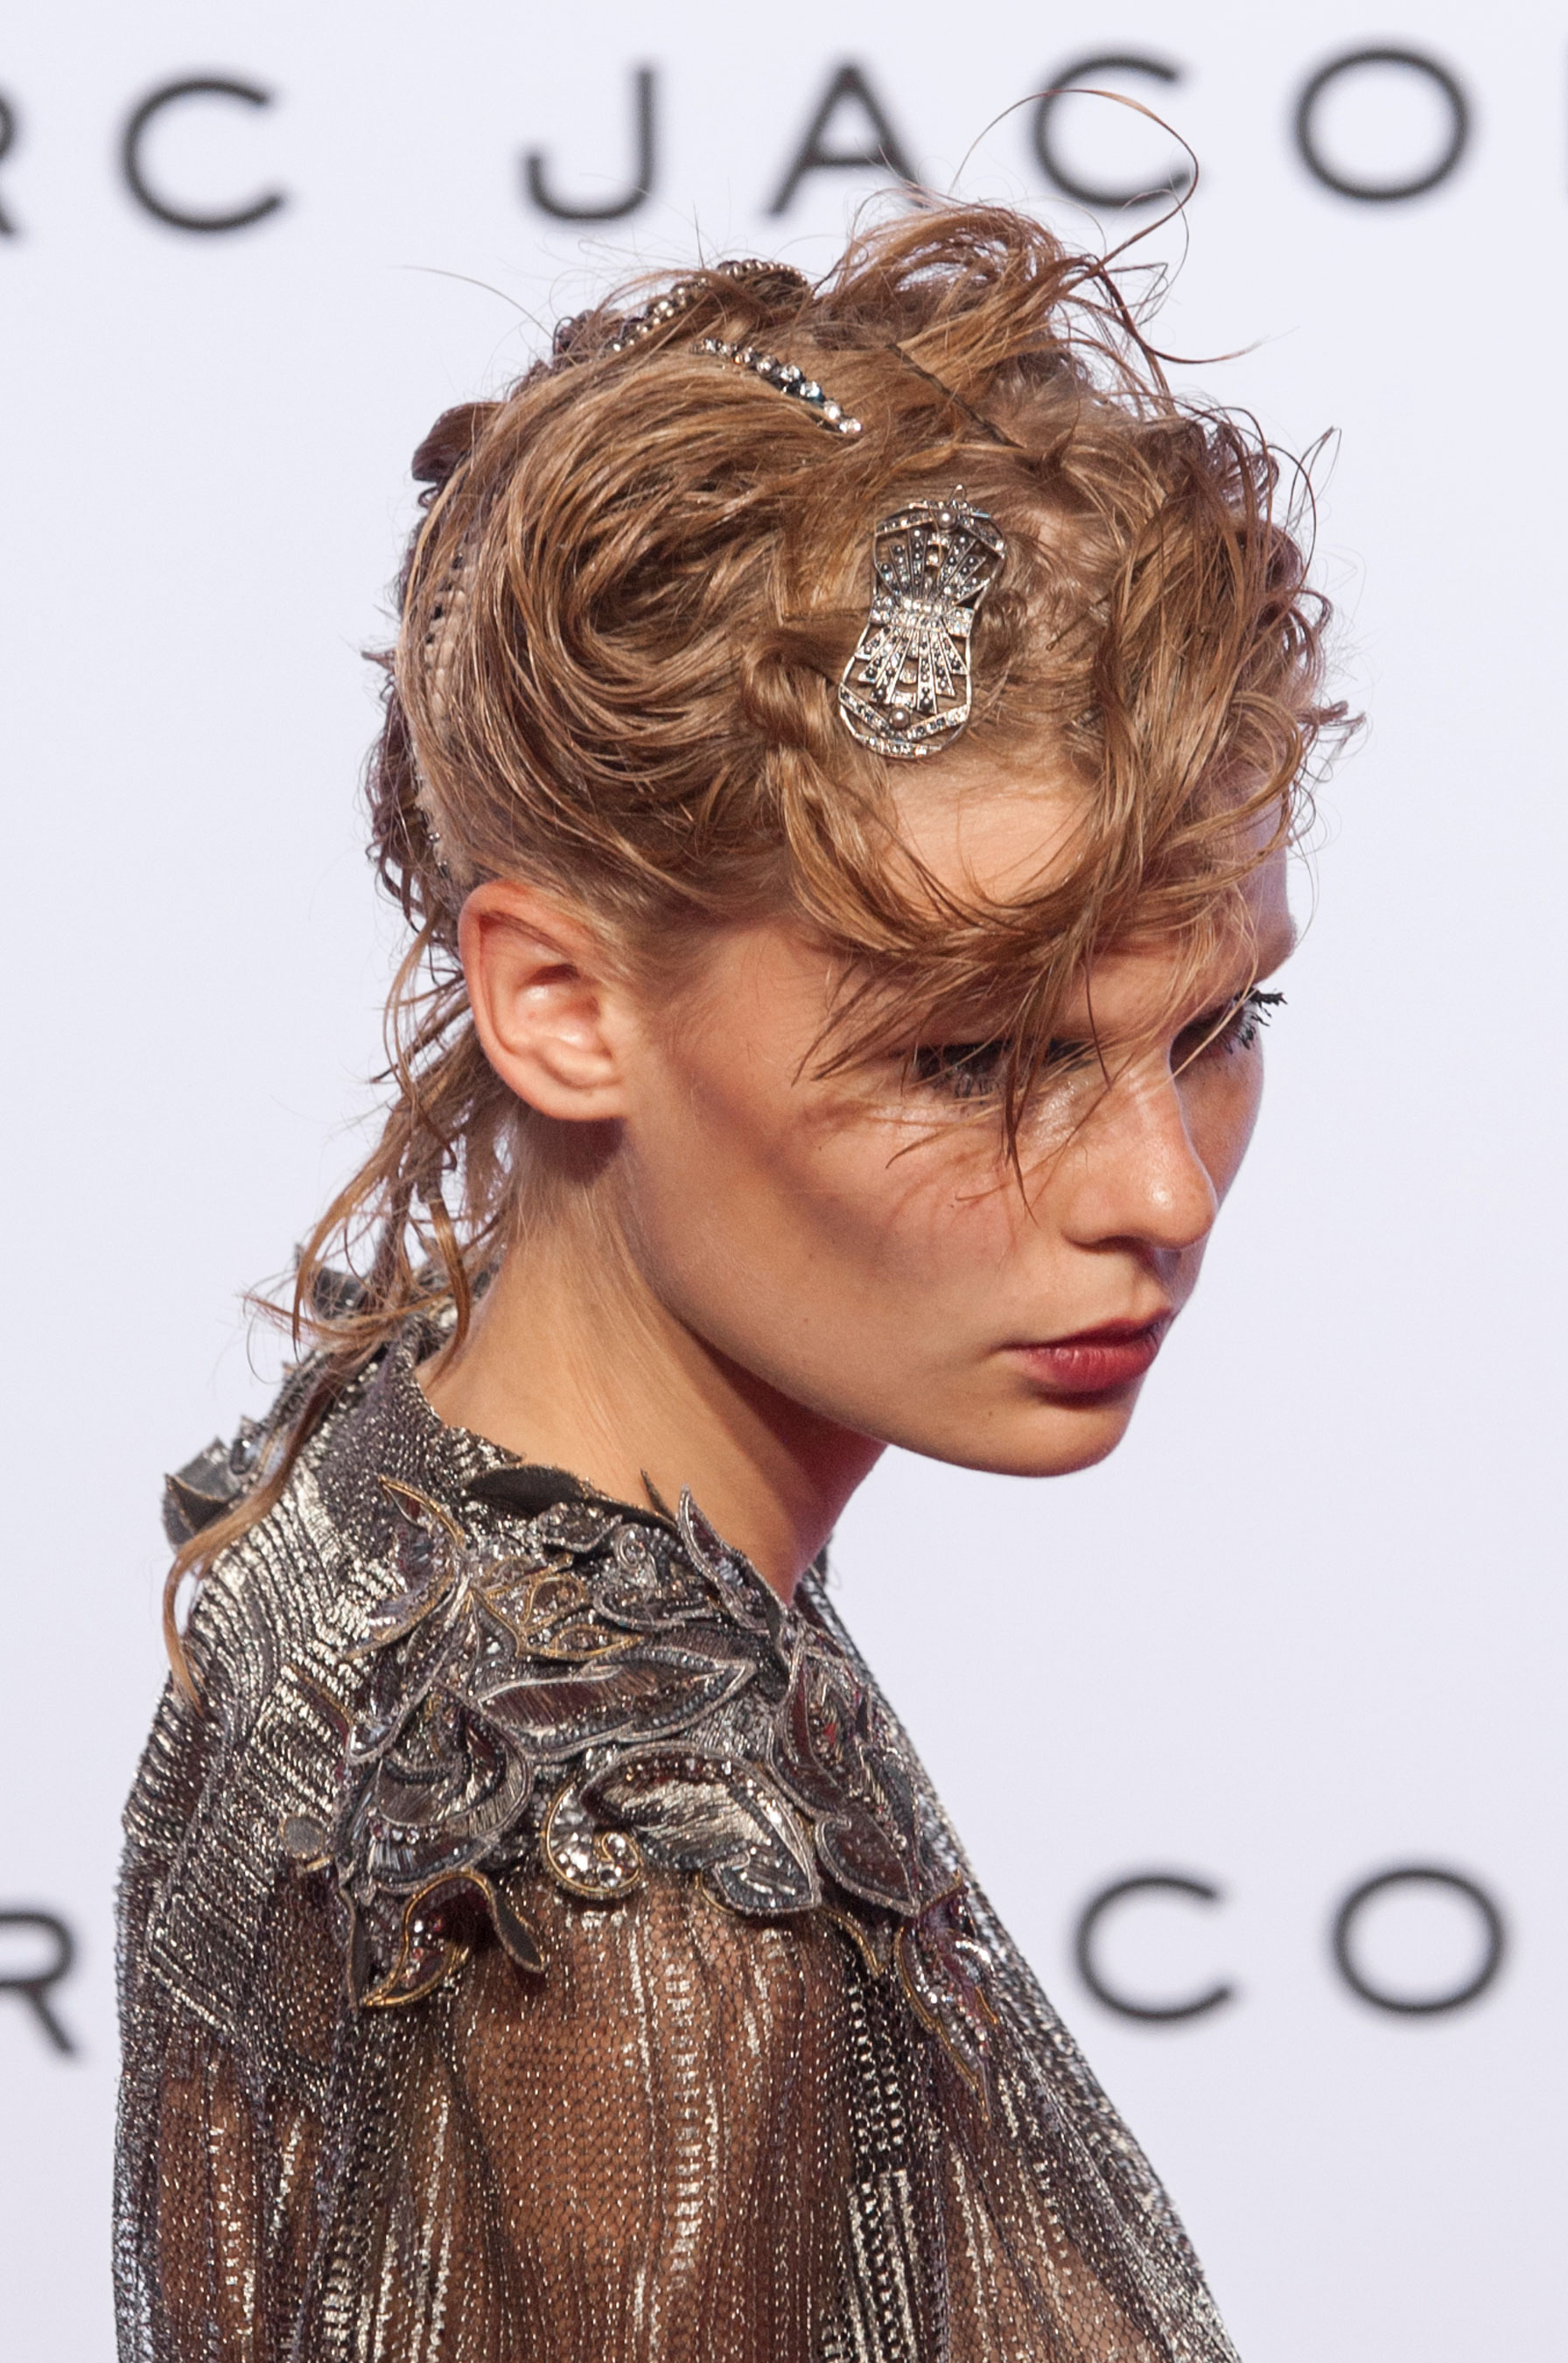 marc-jacobs-spring-2016-runway-beauty-fashion-show-the-impression-28